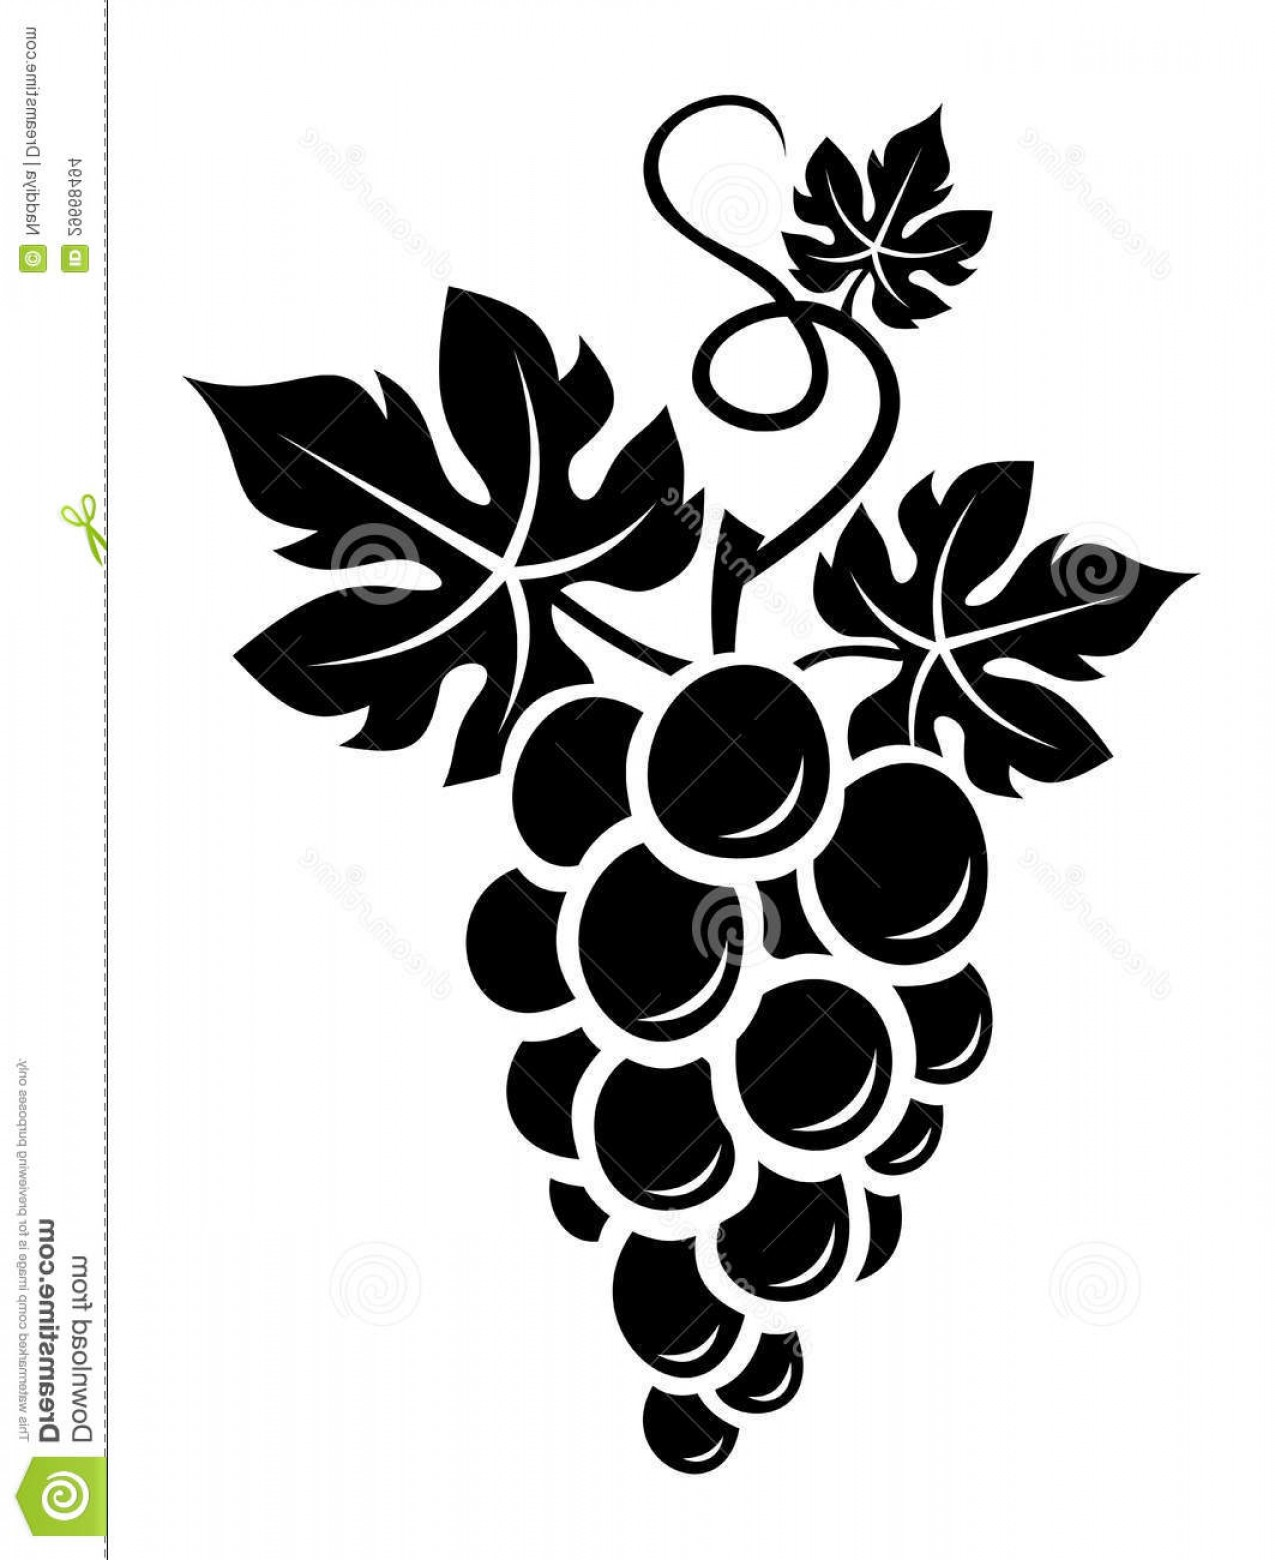 Grapes Clip Art Vector: Stock Images Black Silhouette Grapes Image